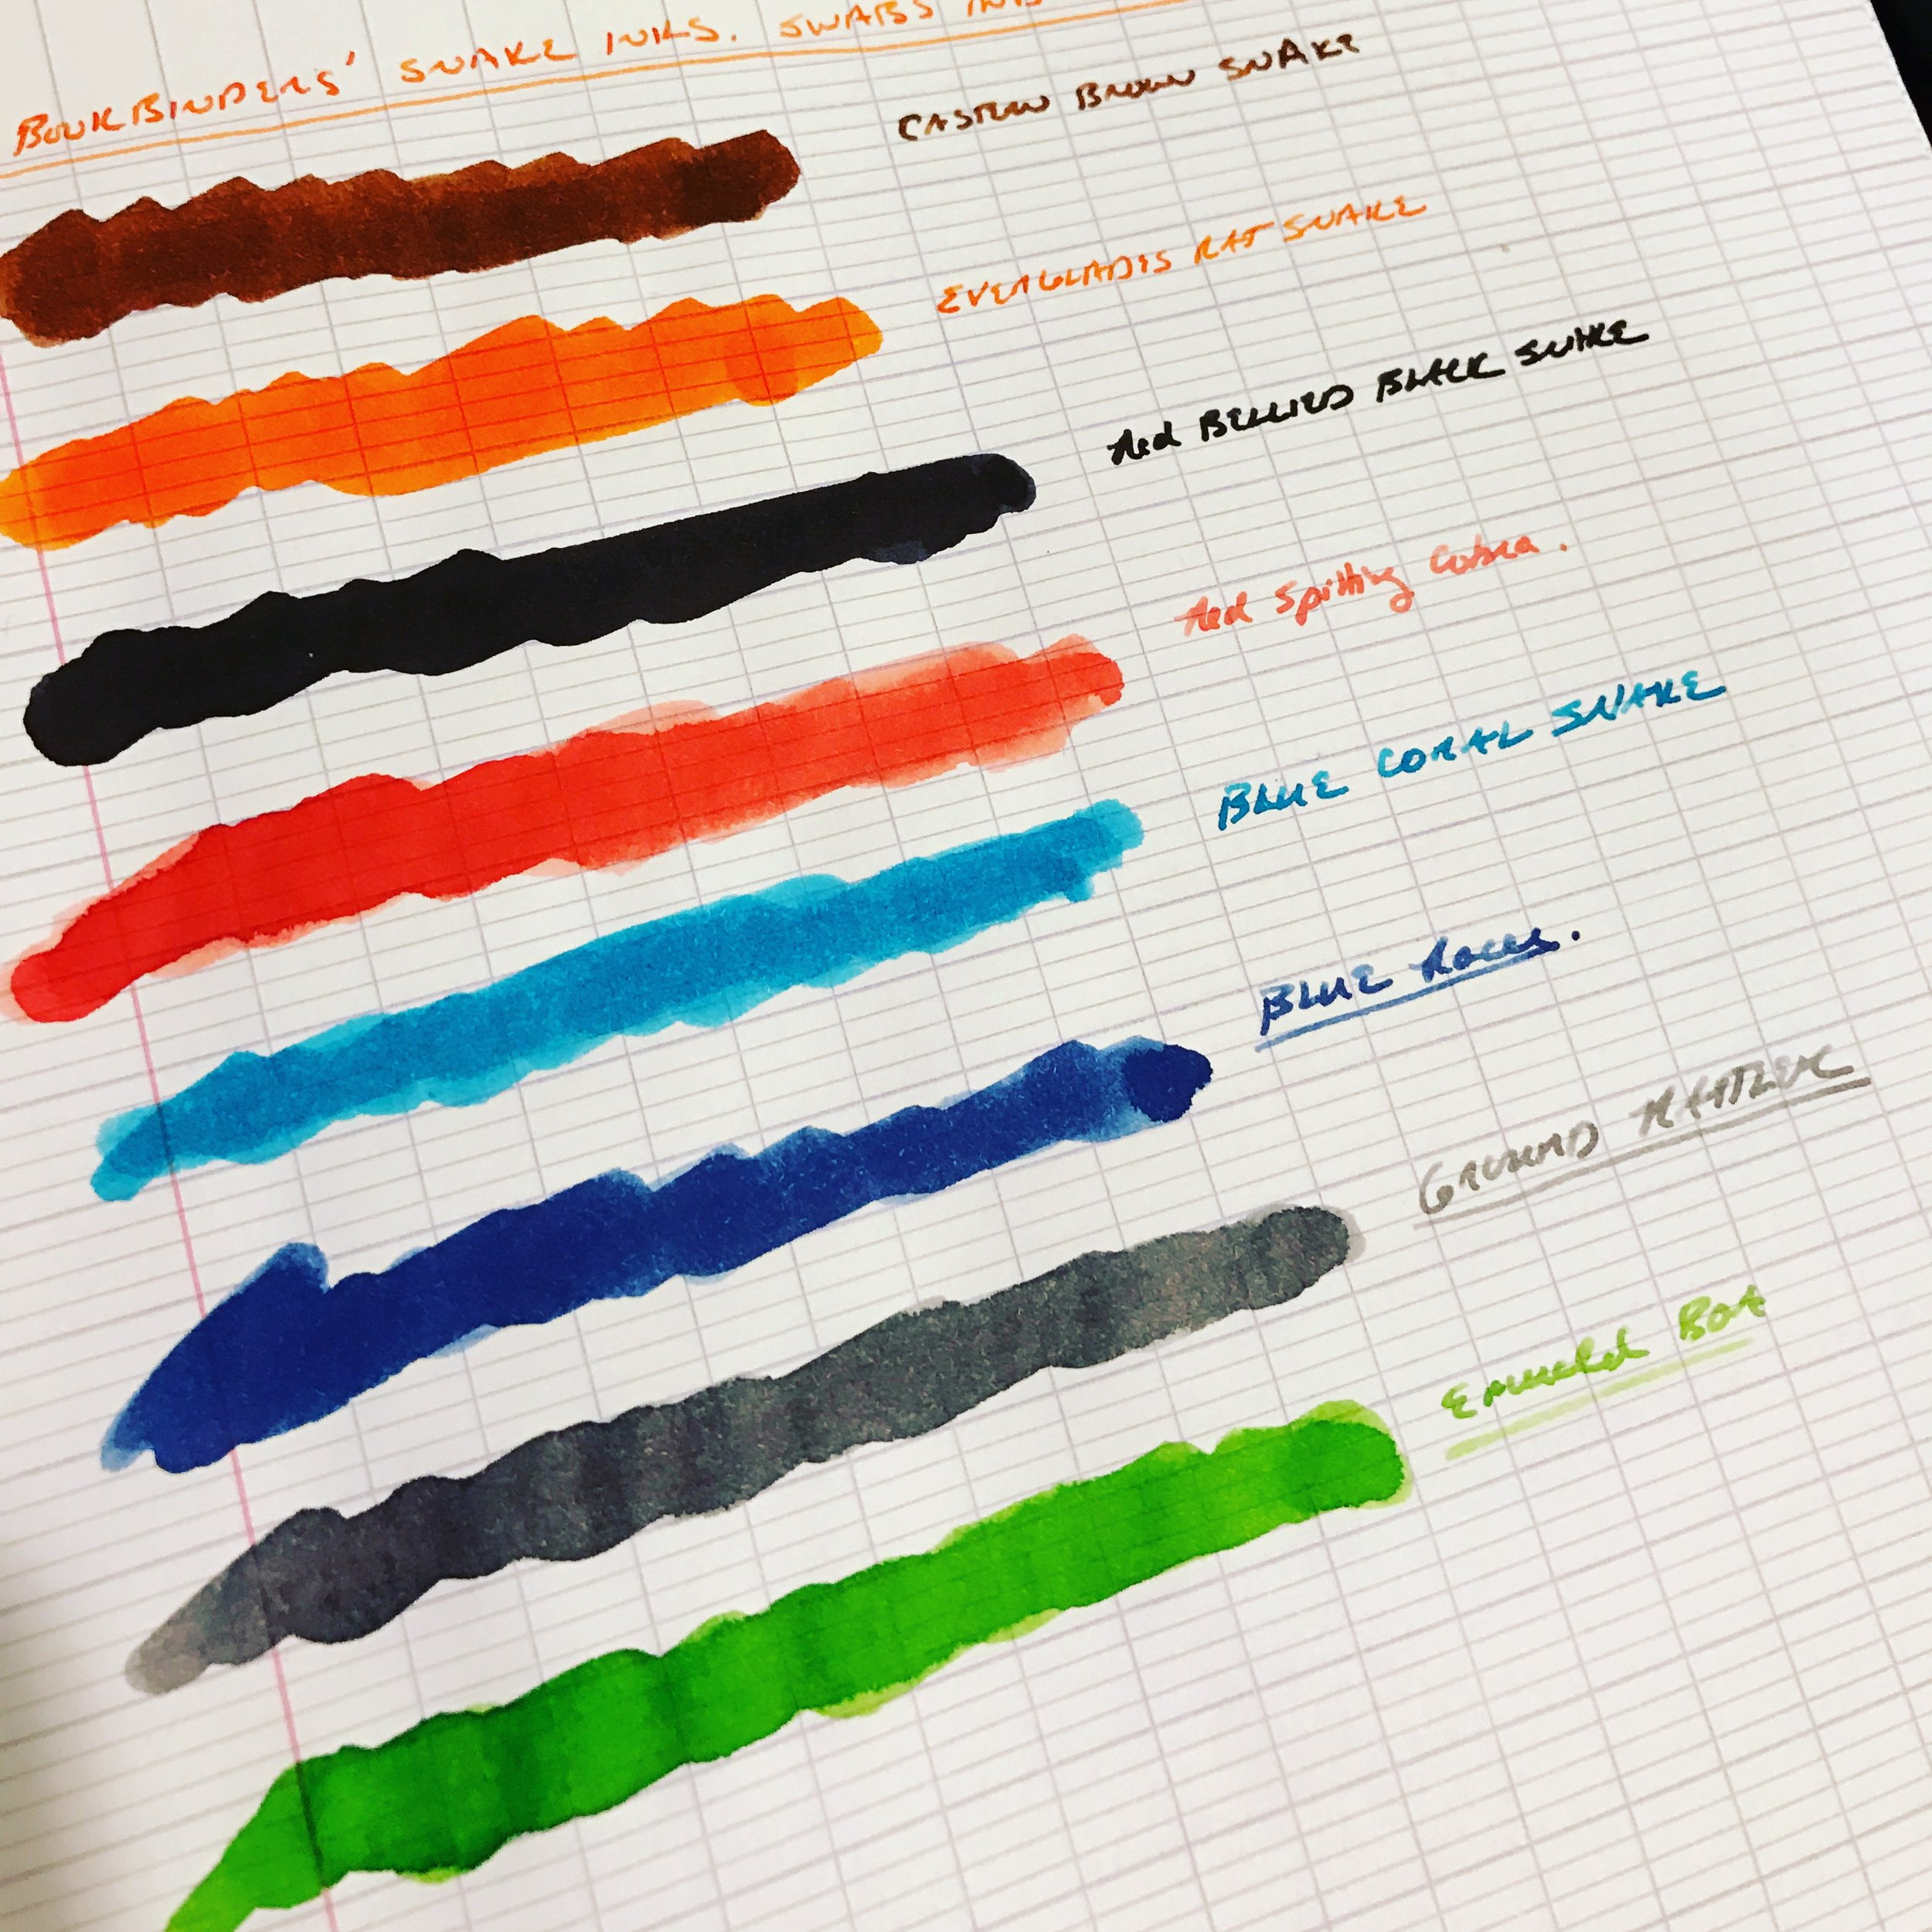 Q-tip swabs on the left, dip-pen writing samples on the right. Check out the vibrancy!